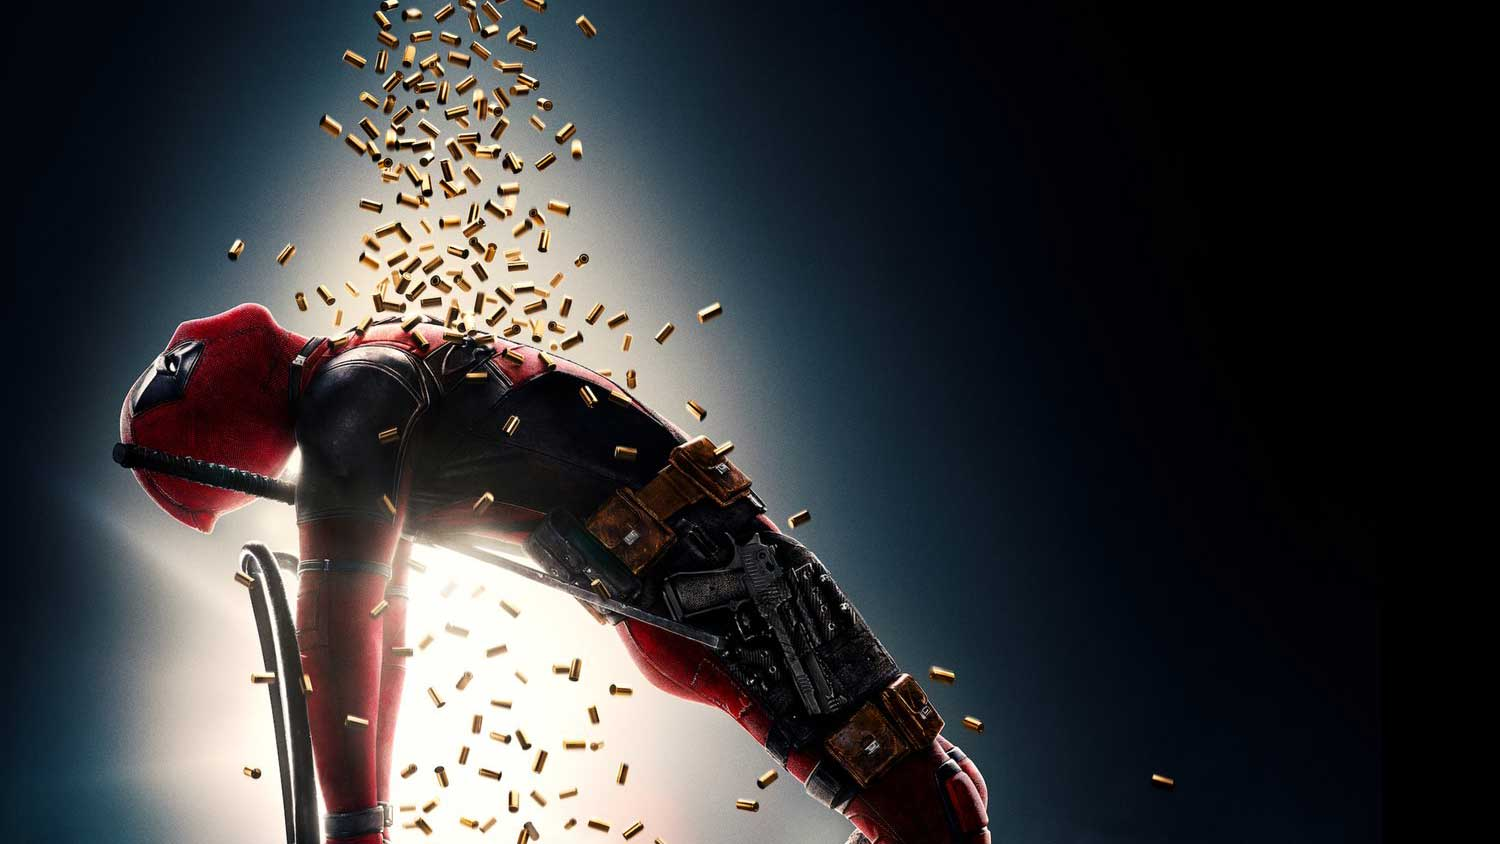 New Deadpool 2 Trailer Released: Great Action, Great Humour And More Cable - OC Movie Reviews - Movie Reviews, Movie News, Documentary Reviews, Short Films, Short Film Reviews, Trailers, Movie Trailers, Interviews, film reviews, film news, hollywood, indie films, documentaries